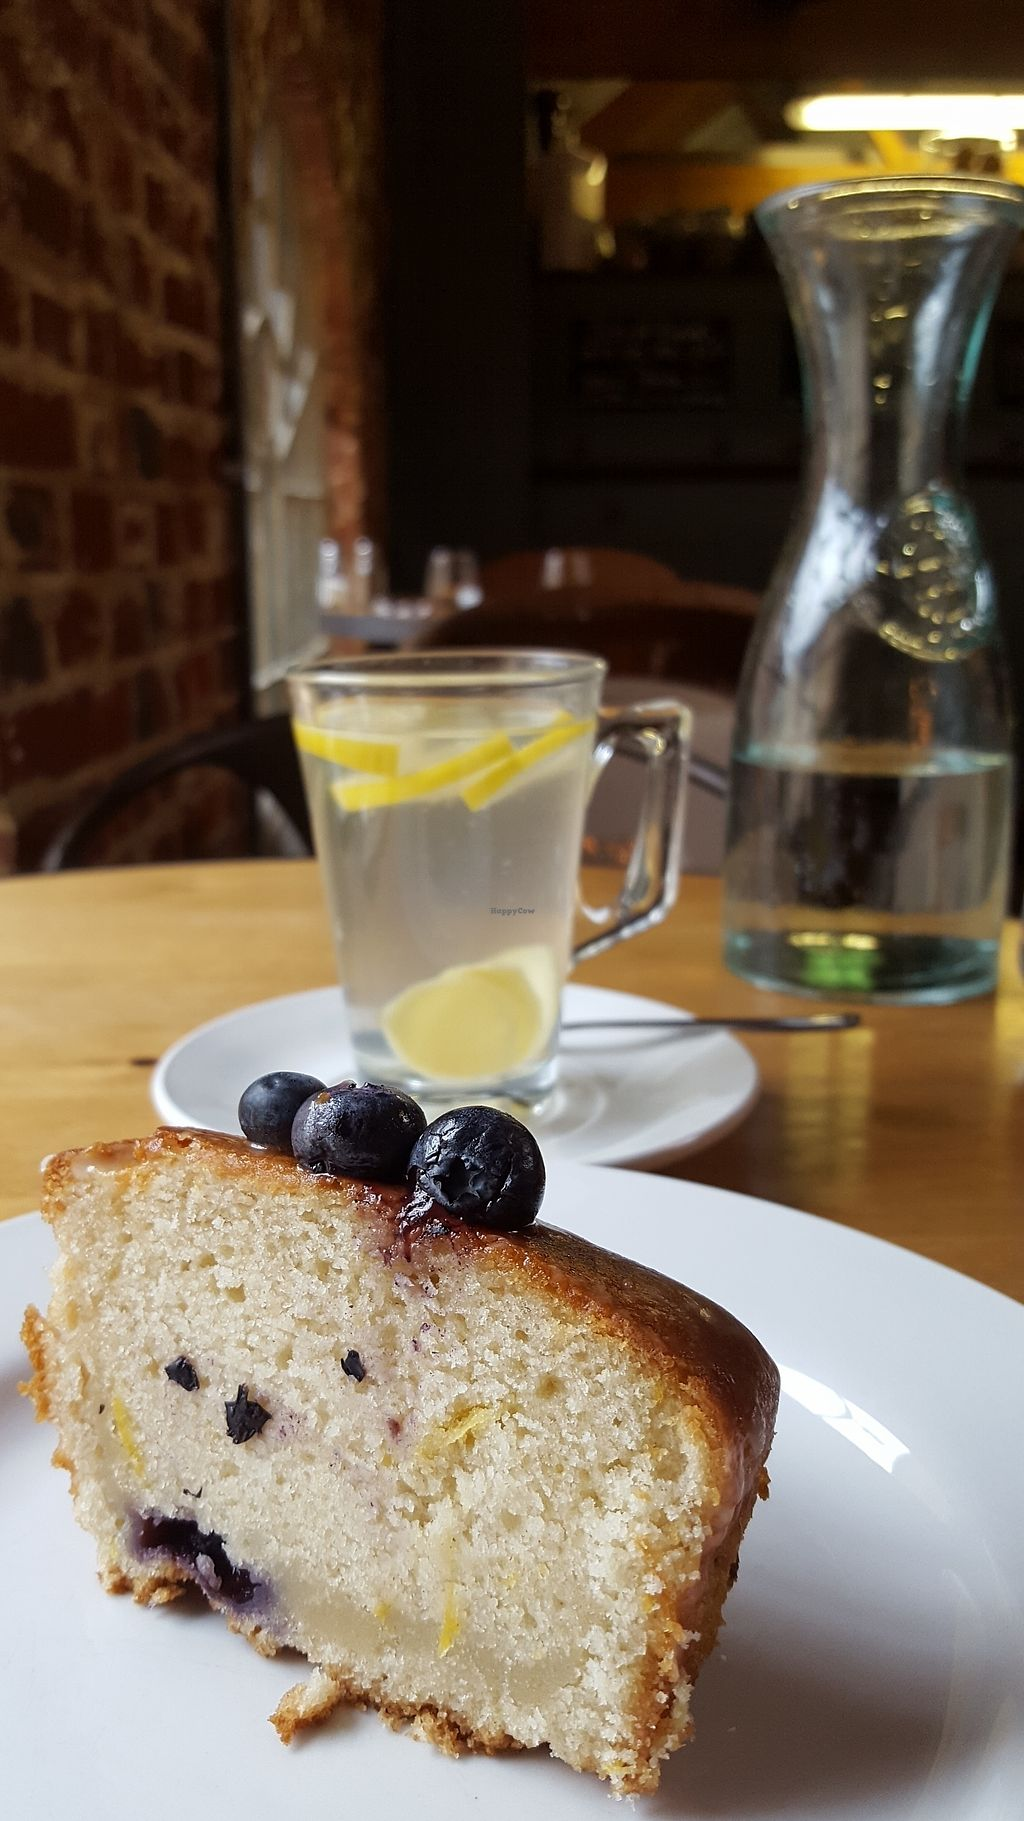 "Photo of Wild Thyme  by <a href=""/members/profile/VeganAnnaS"">VeganAnnaS</a> <br/>Lemon drizzle cake and fresh lemon and giner tea <br/> September 25, 2017  - <a href='/contact/abuse/image/43777/308438'>Report</a>"